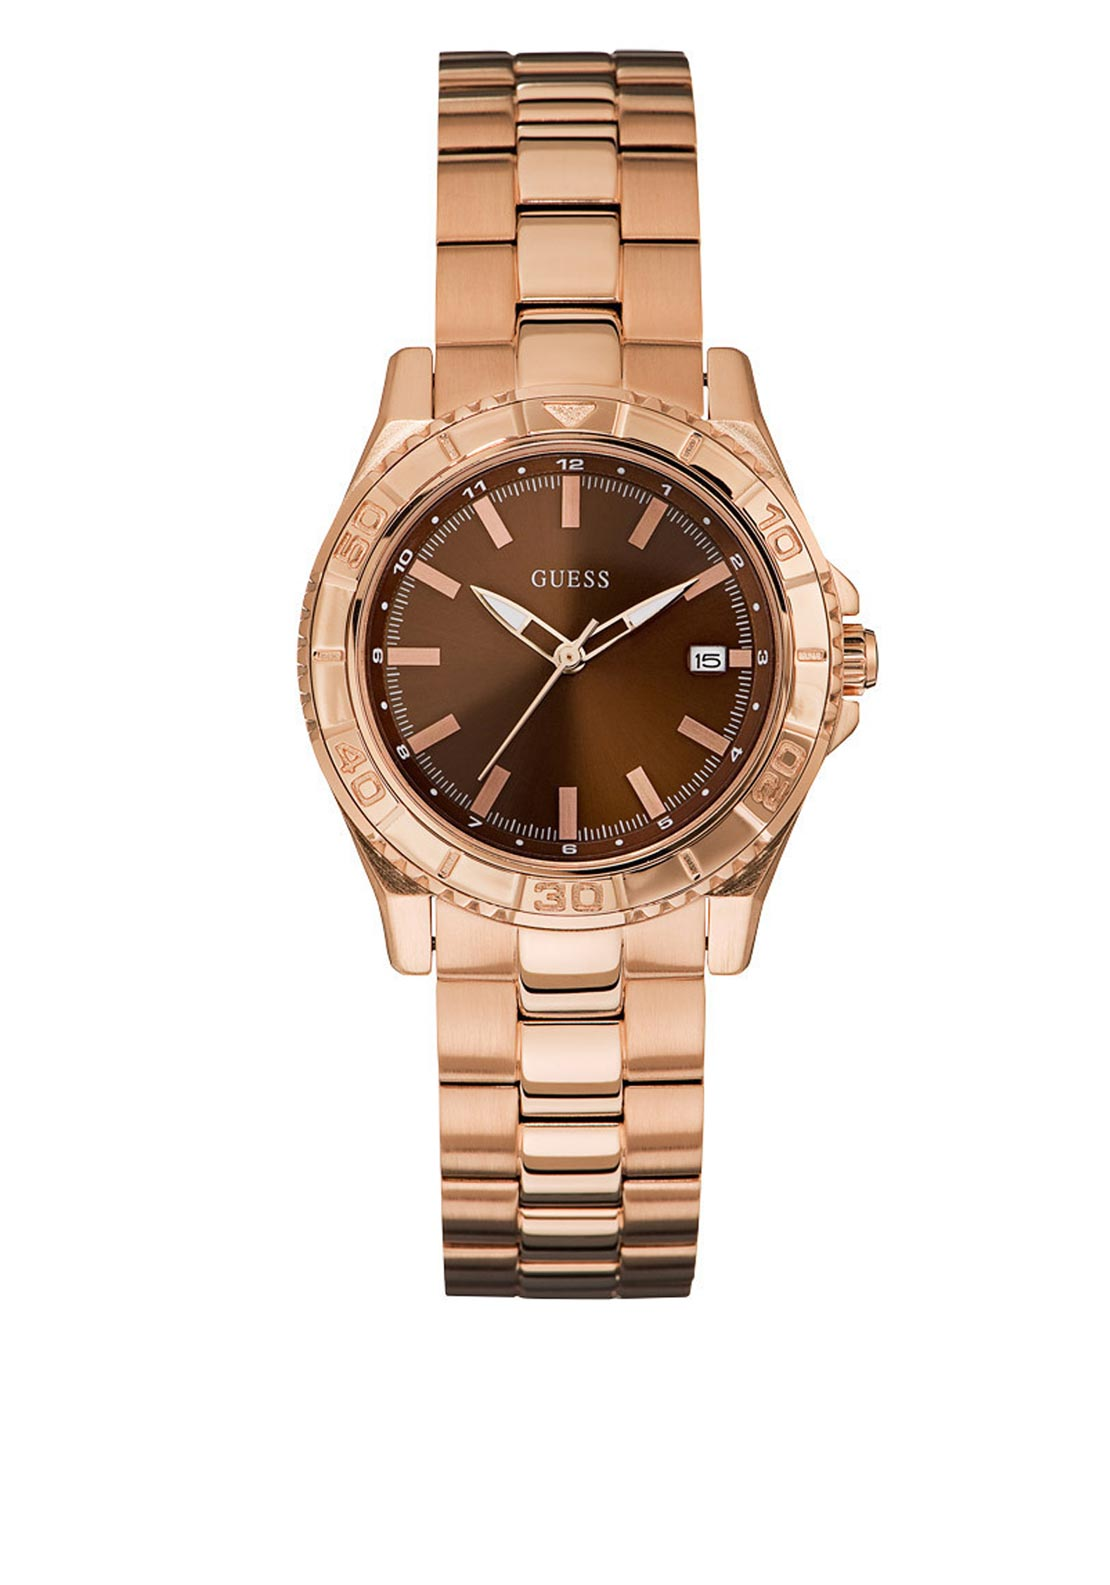 Guess Womens Watch Brown Face and Rose Gold Strap